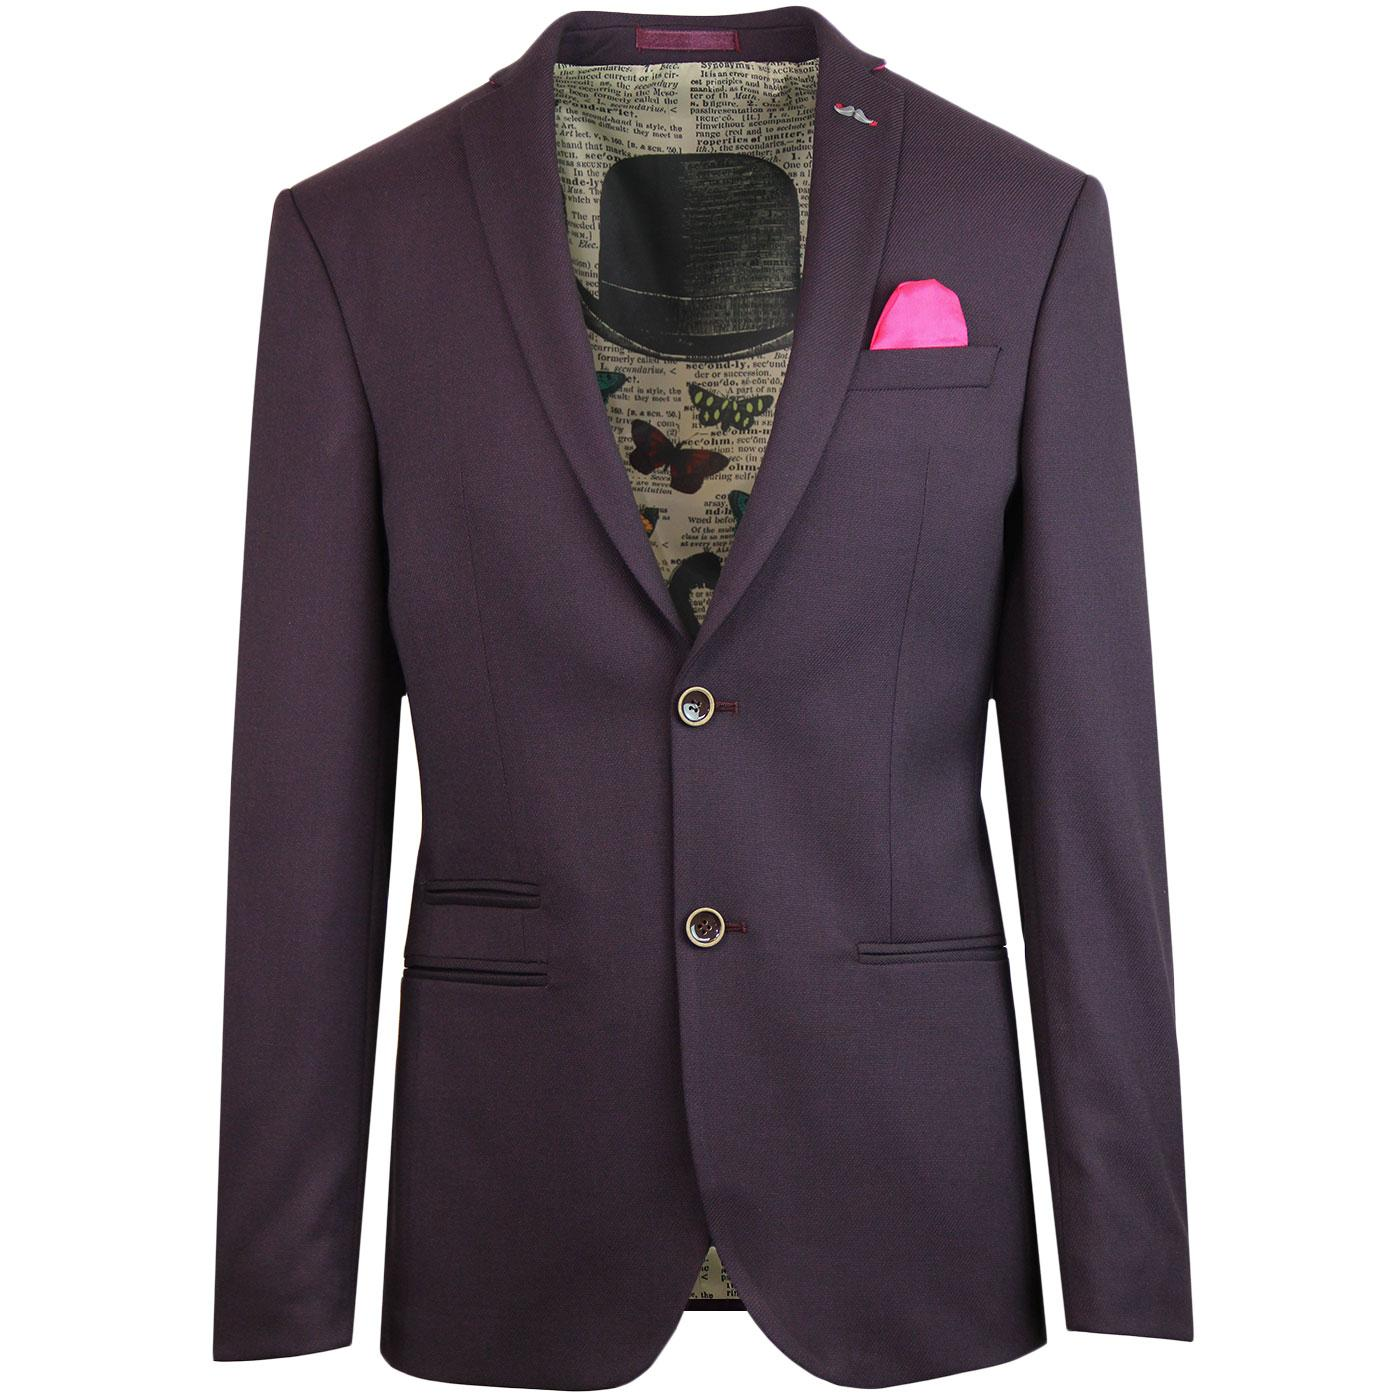 ANTIQUE ROGUE Mod Hopsack Suit Jacket (Burgundy)